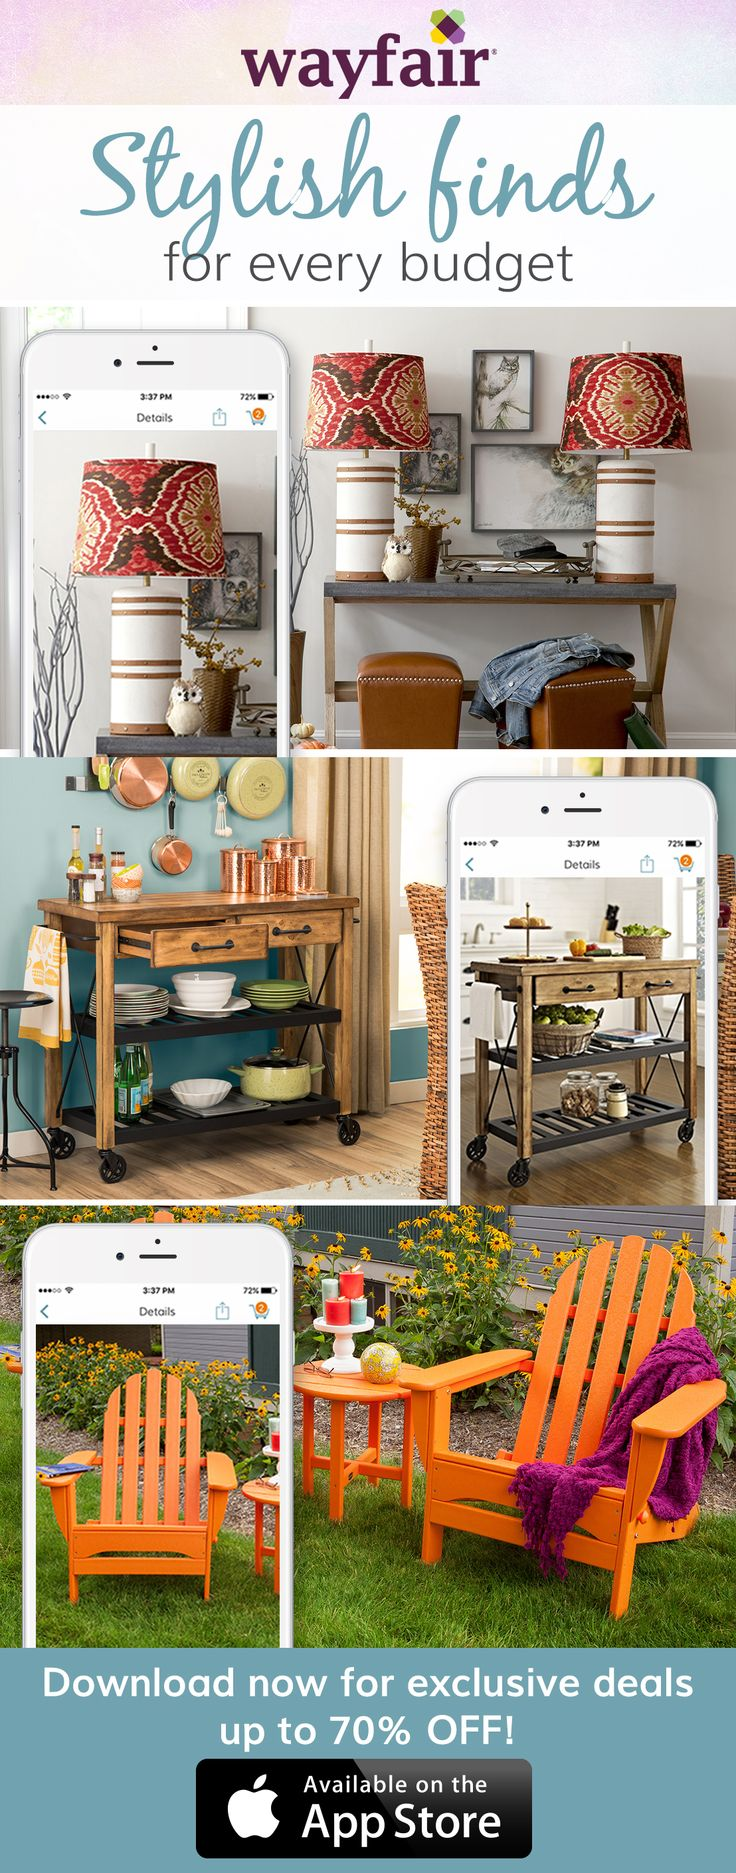 Treat your home to an update! Increasing storage space in your kitchen or spicing up a room with color doesn't have to include an expensive and lengthy renovation. Download the free Wayfair app to access exclusive deals everyday up to 70% off. Free shipping on all orders over $49.